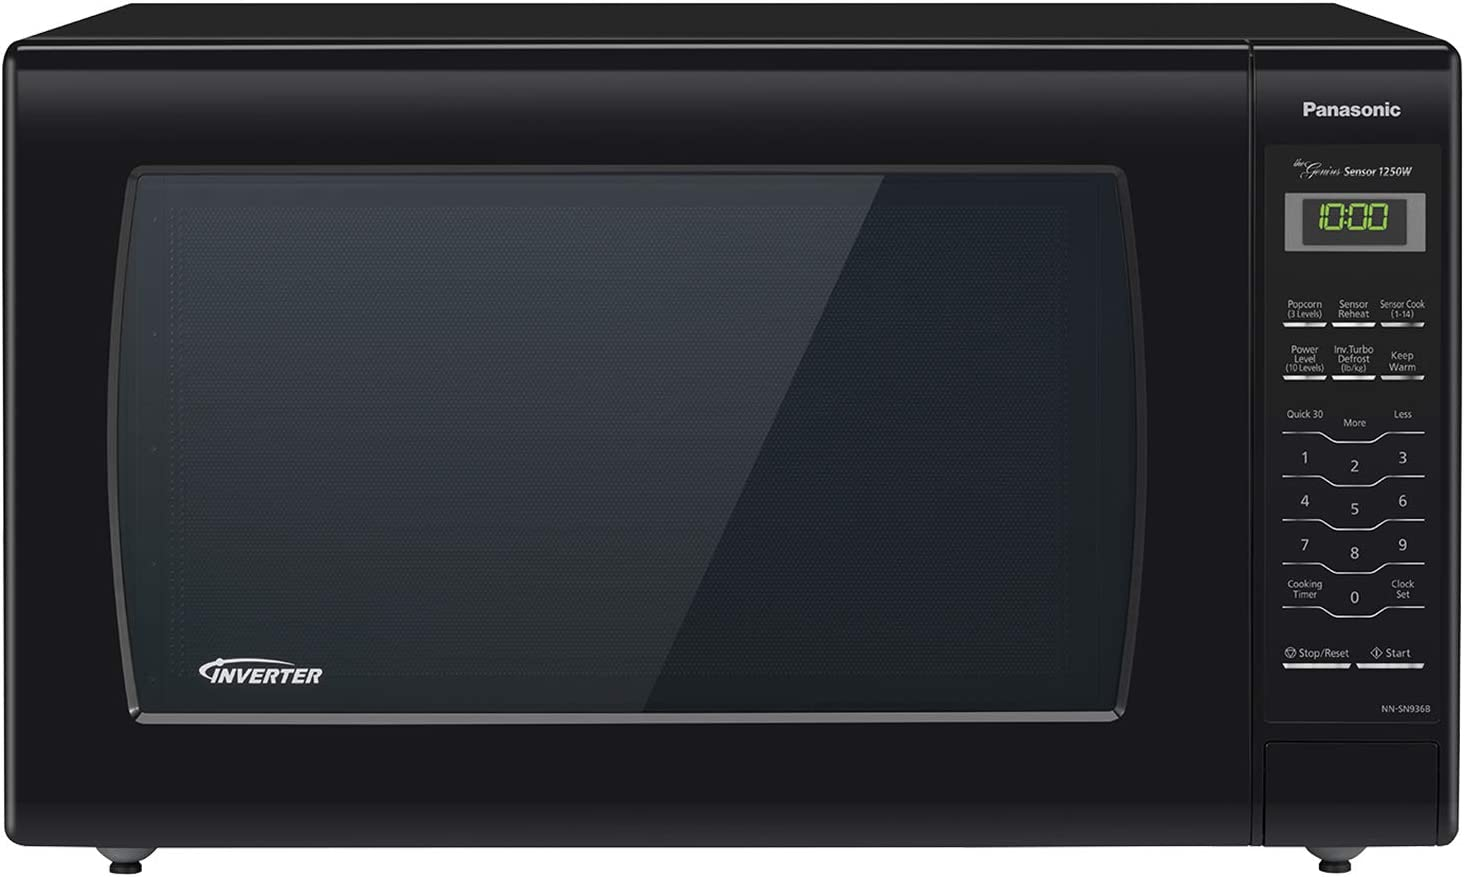 Panasonic Microwave Oven Black Countertop with Inverter Technology